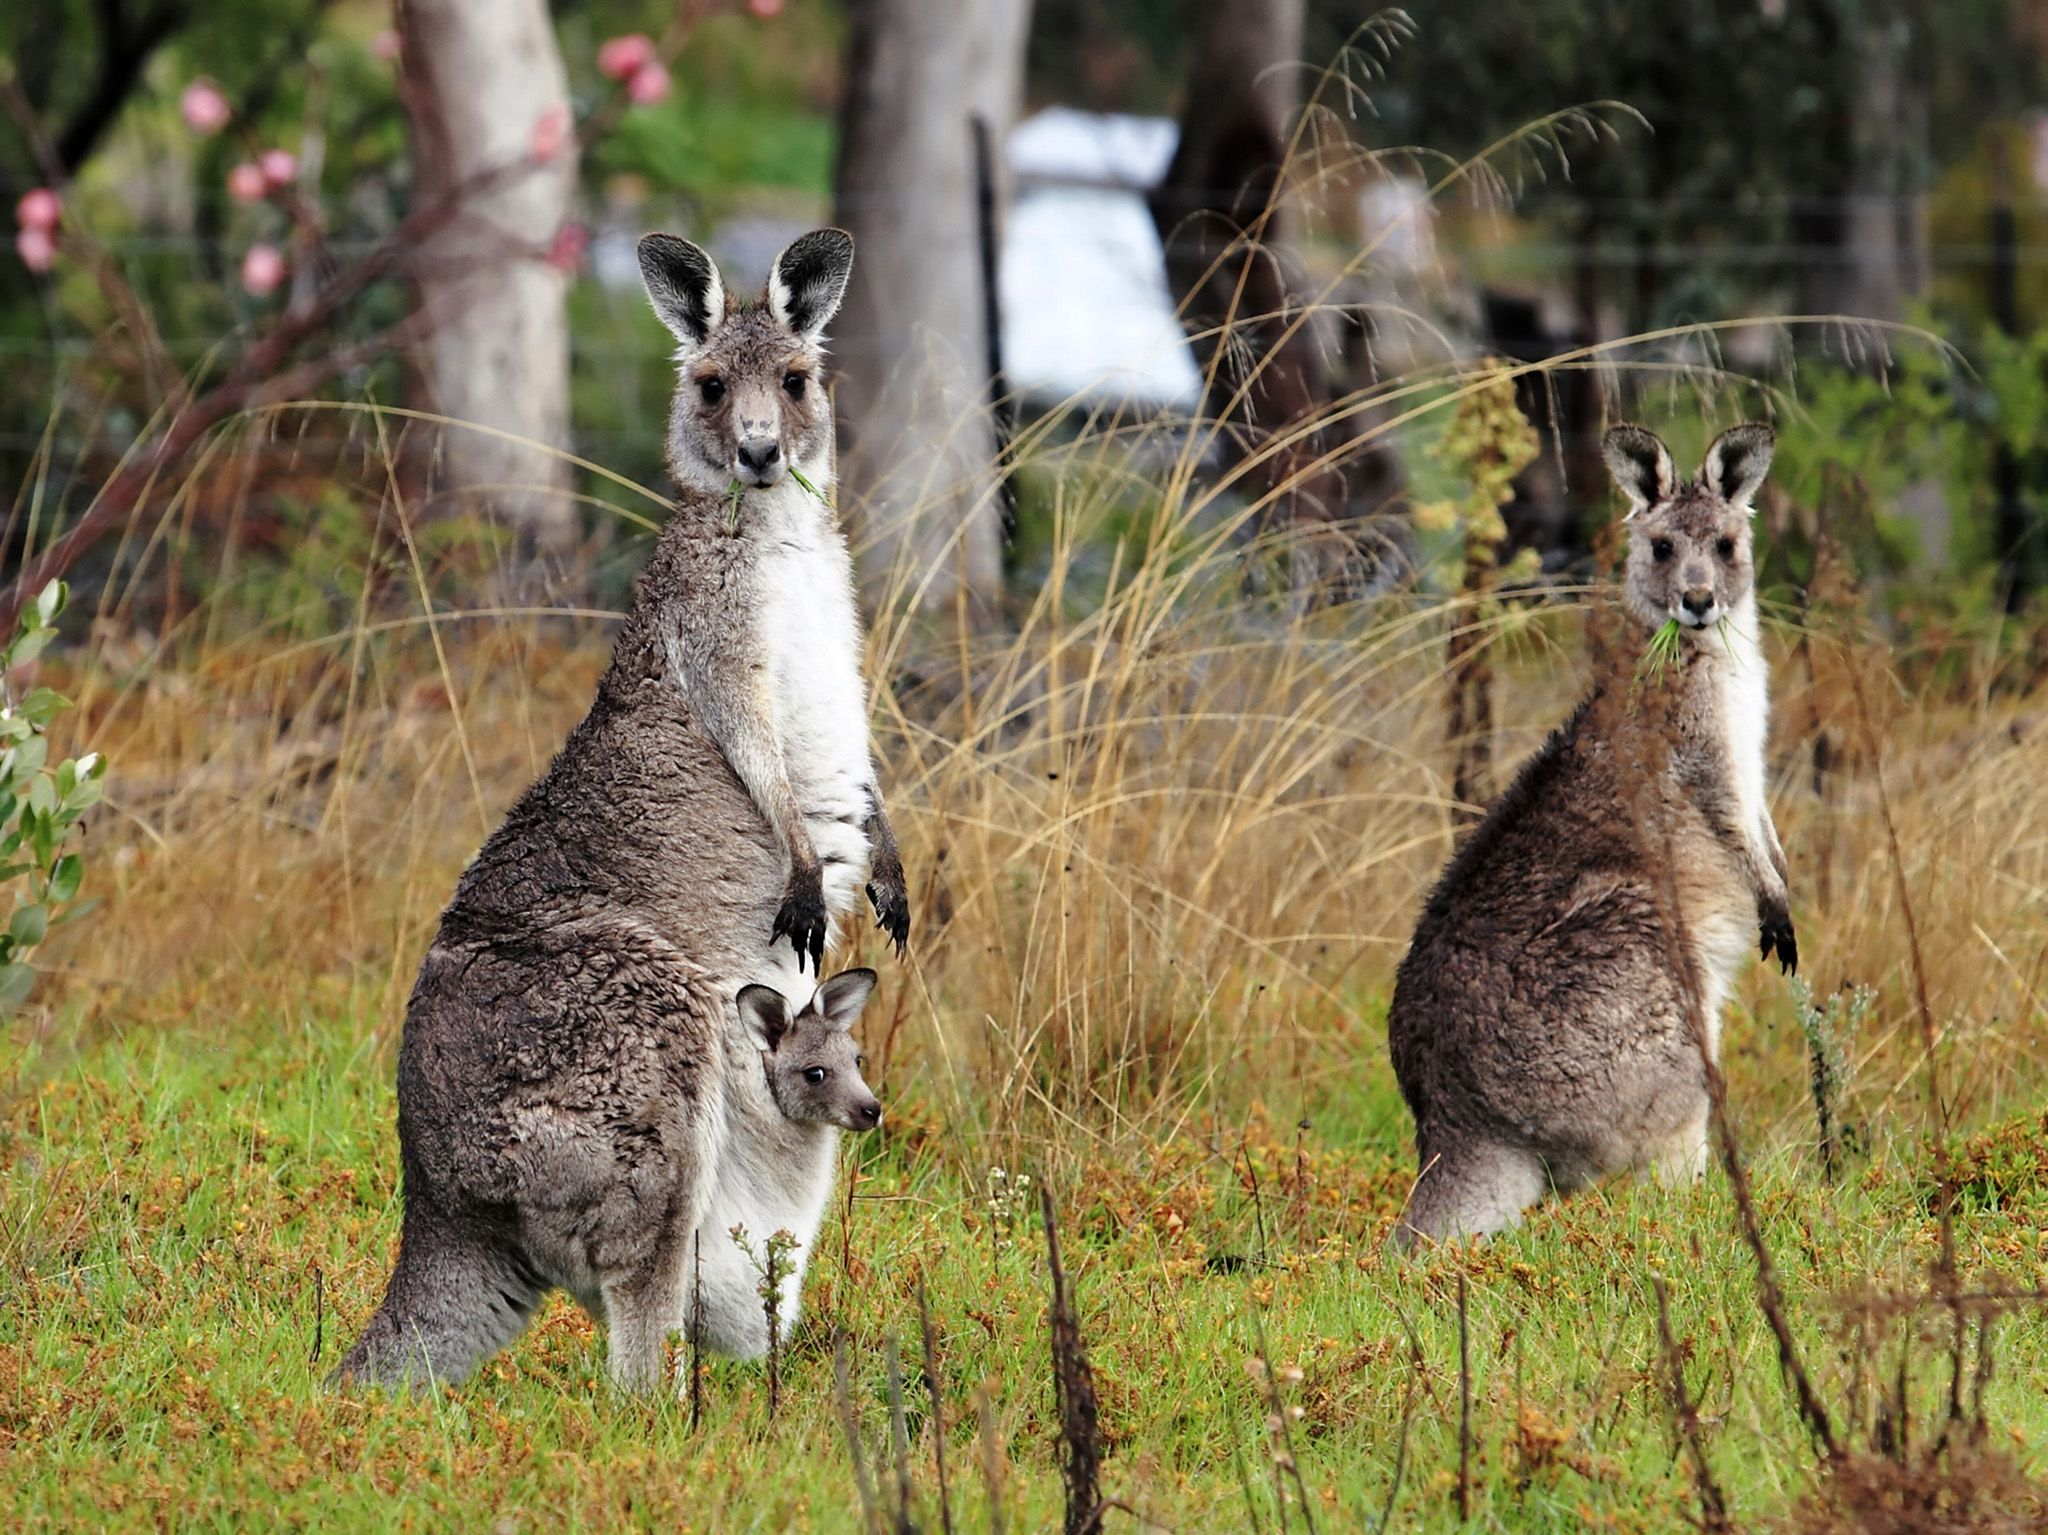 A gray kangaroo and her joey with another kangaroo in a fruit garden (peach blossoms visible)... [Photo of the day - October 2017]